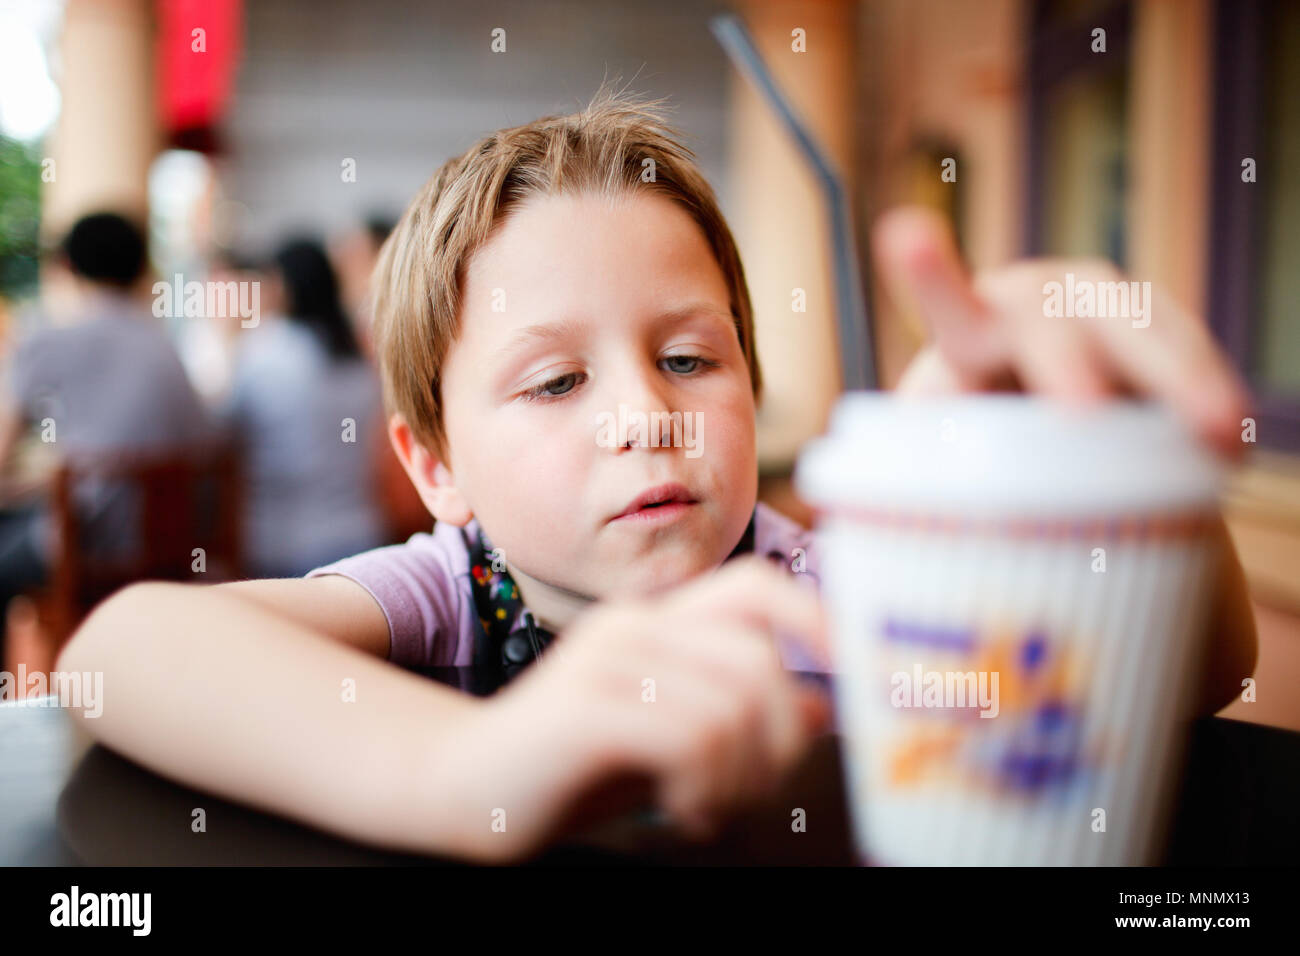 Casual portrait of little boy in cafe - Stock Image